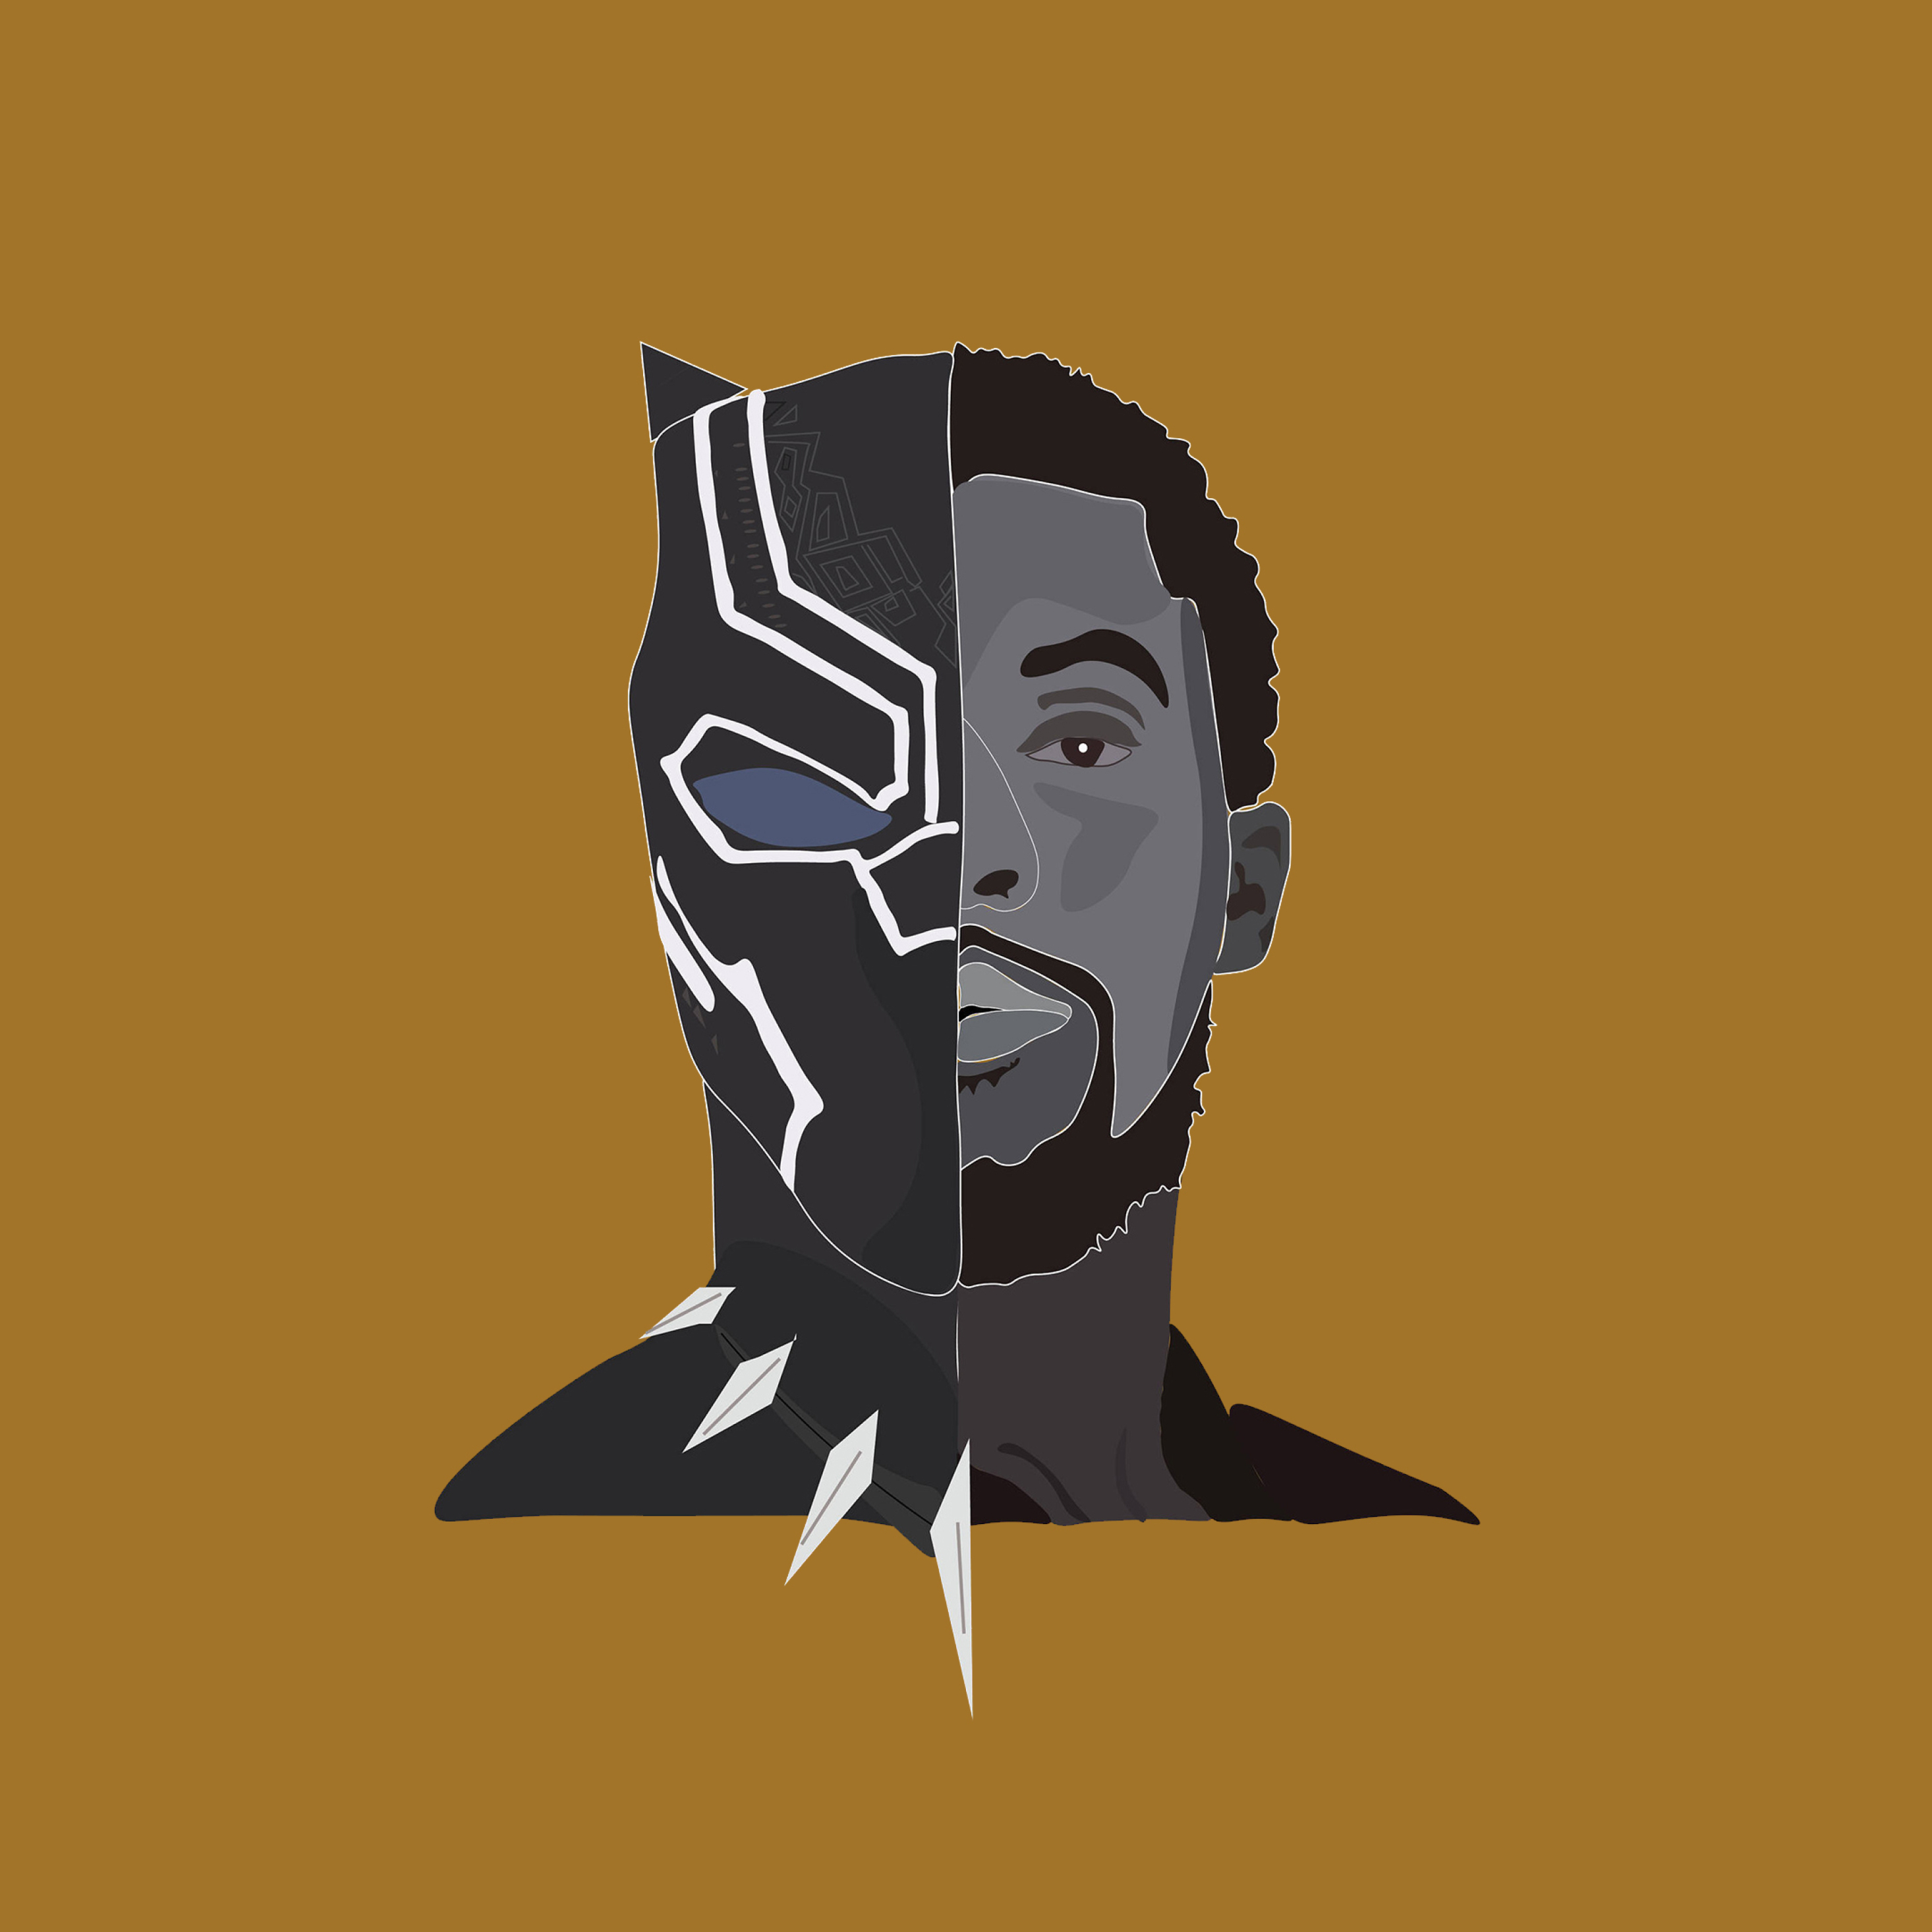 Wallpaper Iphone Minimalist: Black Panther Chadwick Boseman Movie Minimalism, HD 4K